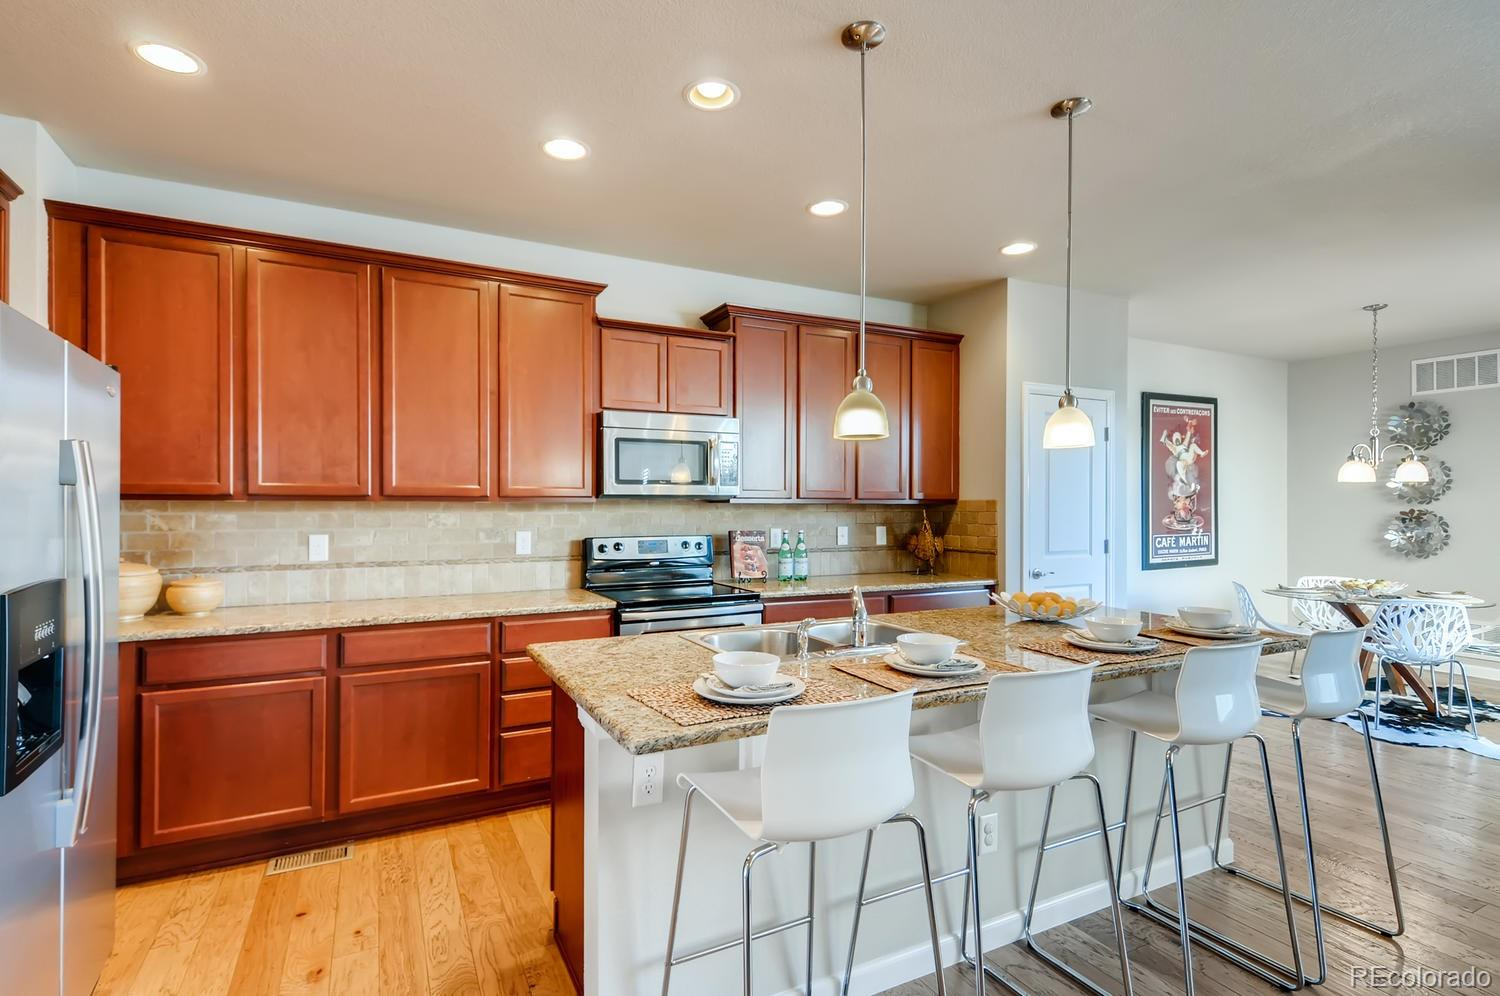 MLS# 7221066 - 3 - 6288 Orchard Court #B, Arvada, CO 80403